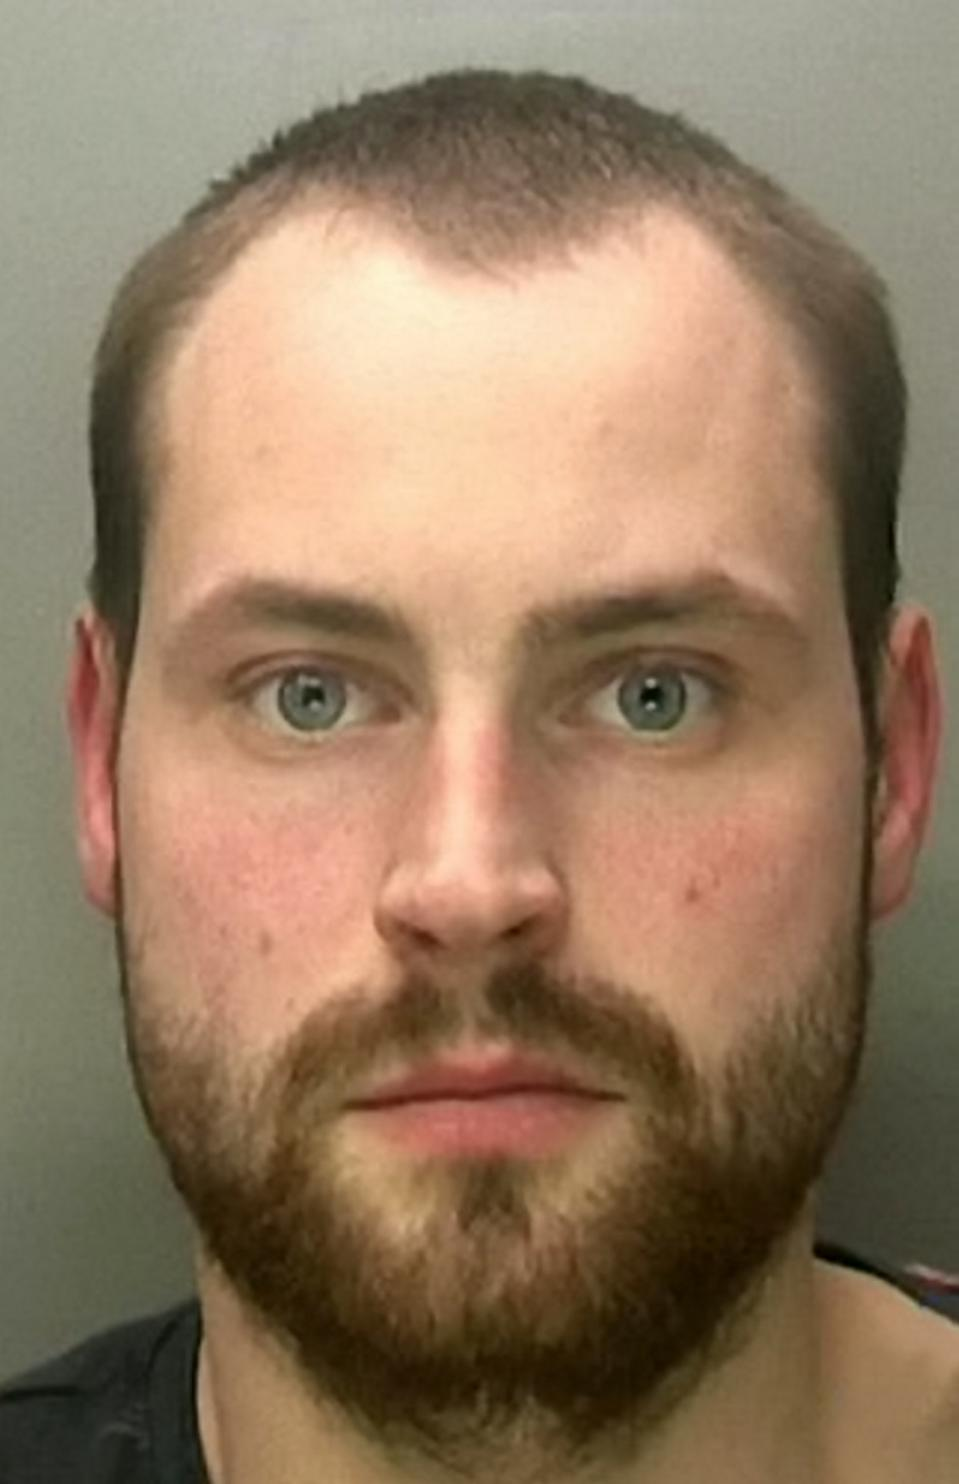 Bartosz Konopacki, 26, attacked the 31-year-old sex worker after driving around searching for a woman to attack after he was dumped. (SWNS)